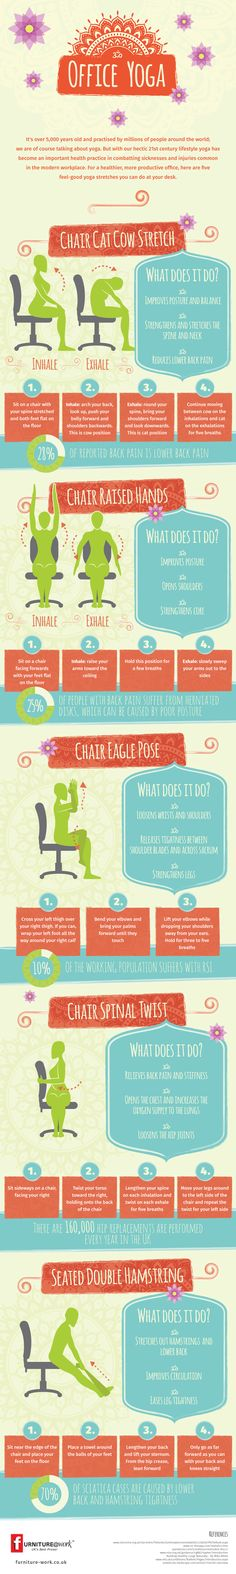 Office-Yoga-Infographic